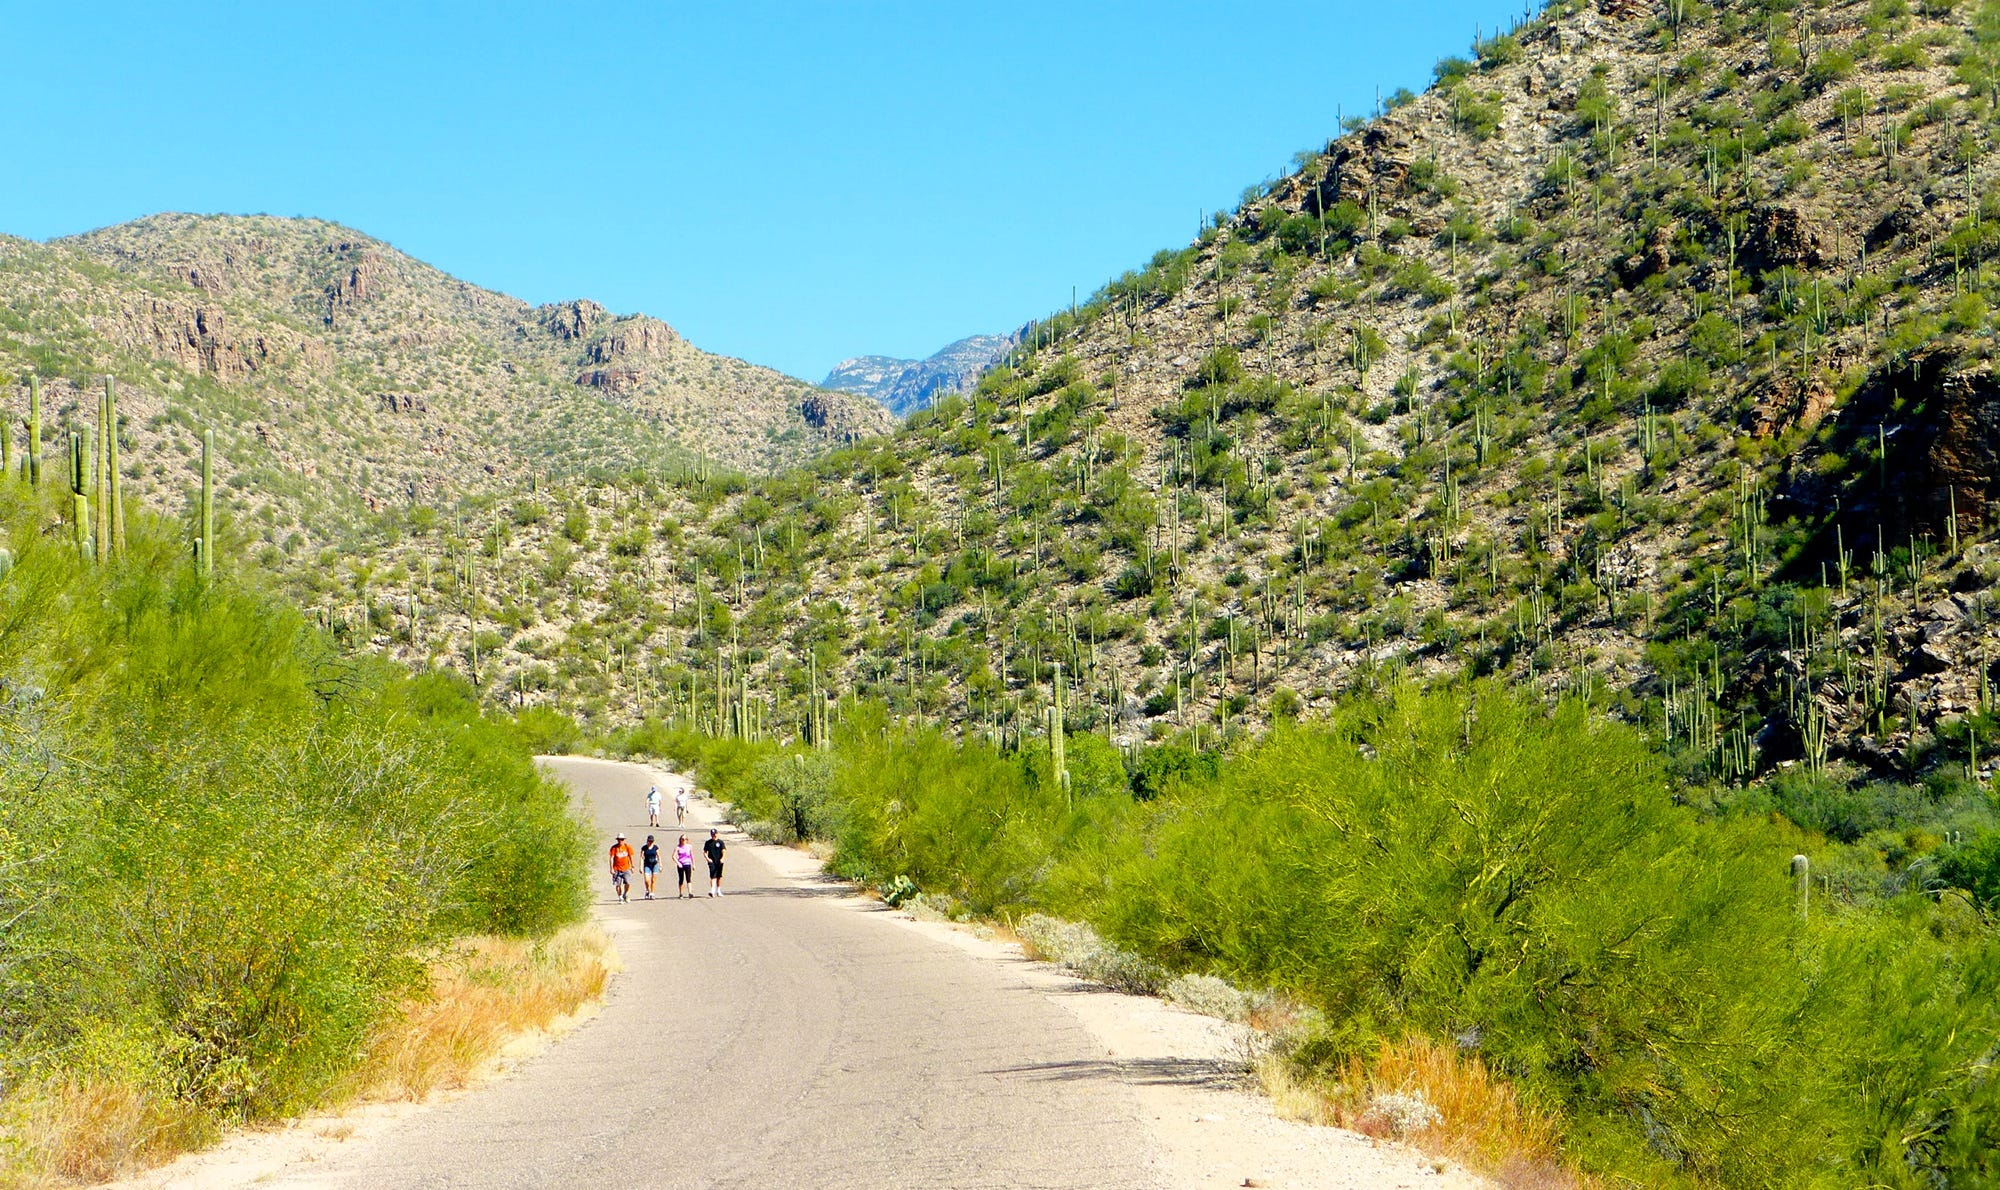 http://www azcentral com/picture-gallery/travel/arizona/hiking/2016/11